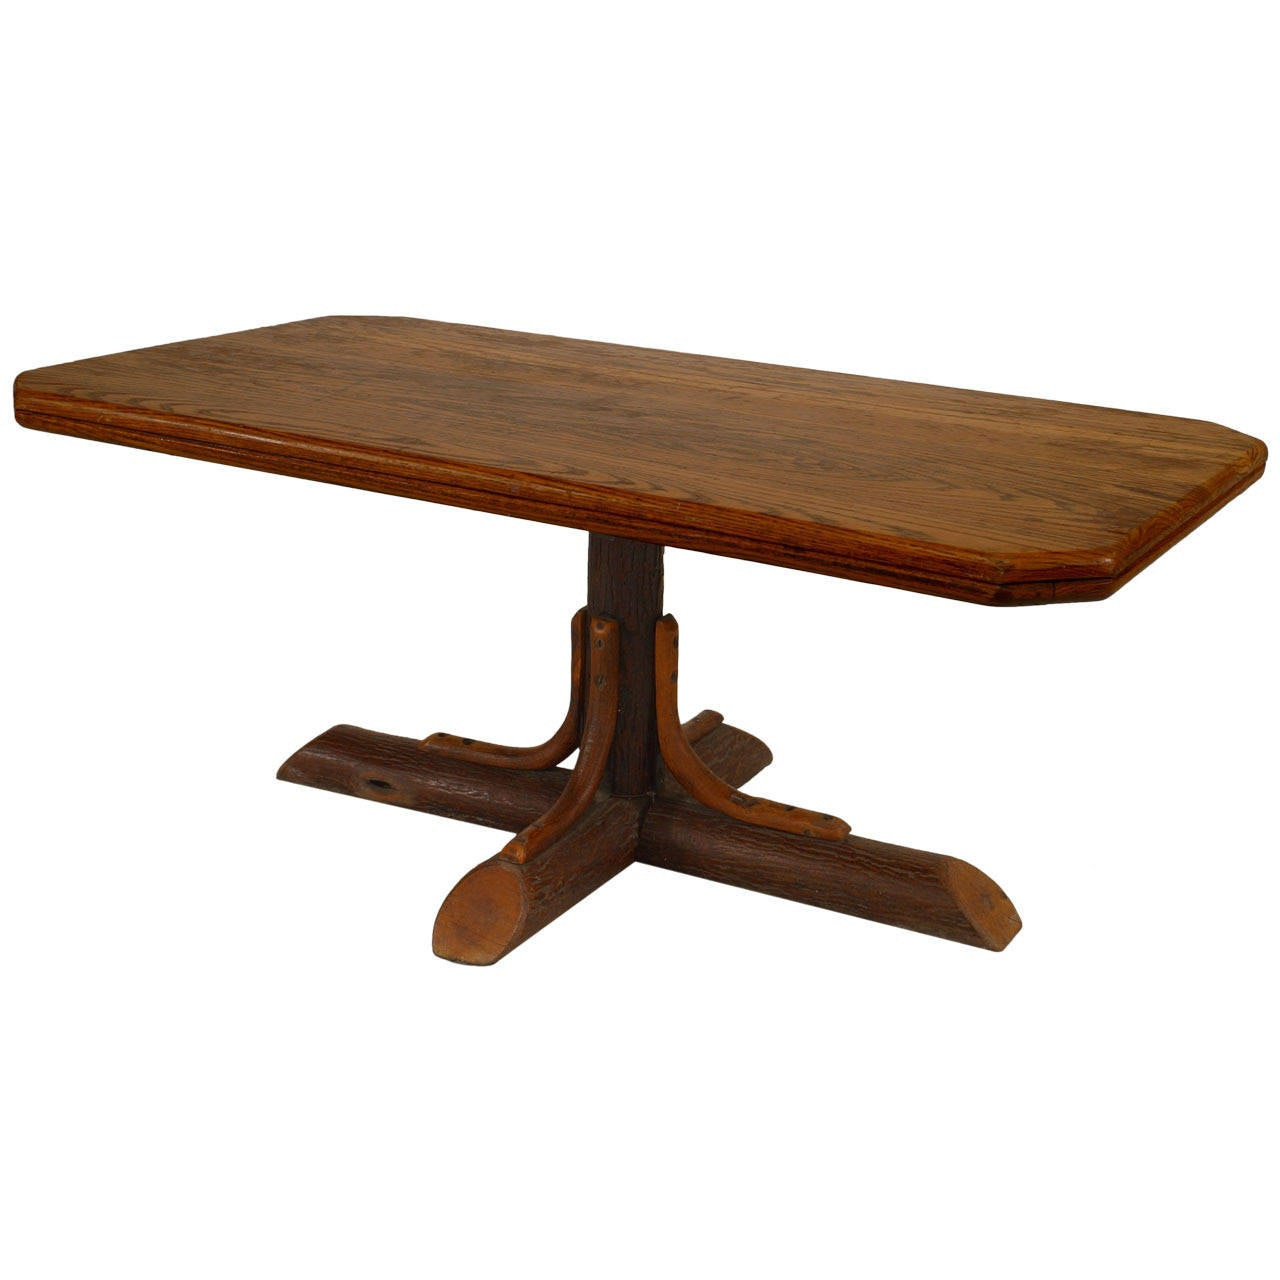 American rustic old hickory coffee table at 1stdibs Coffee tables rustic